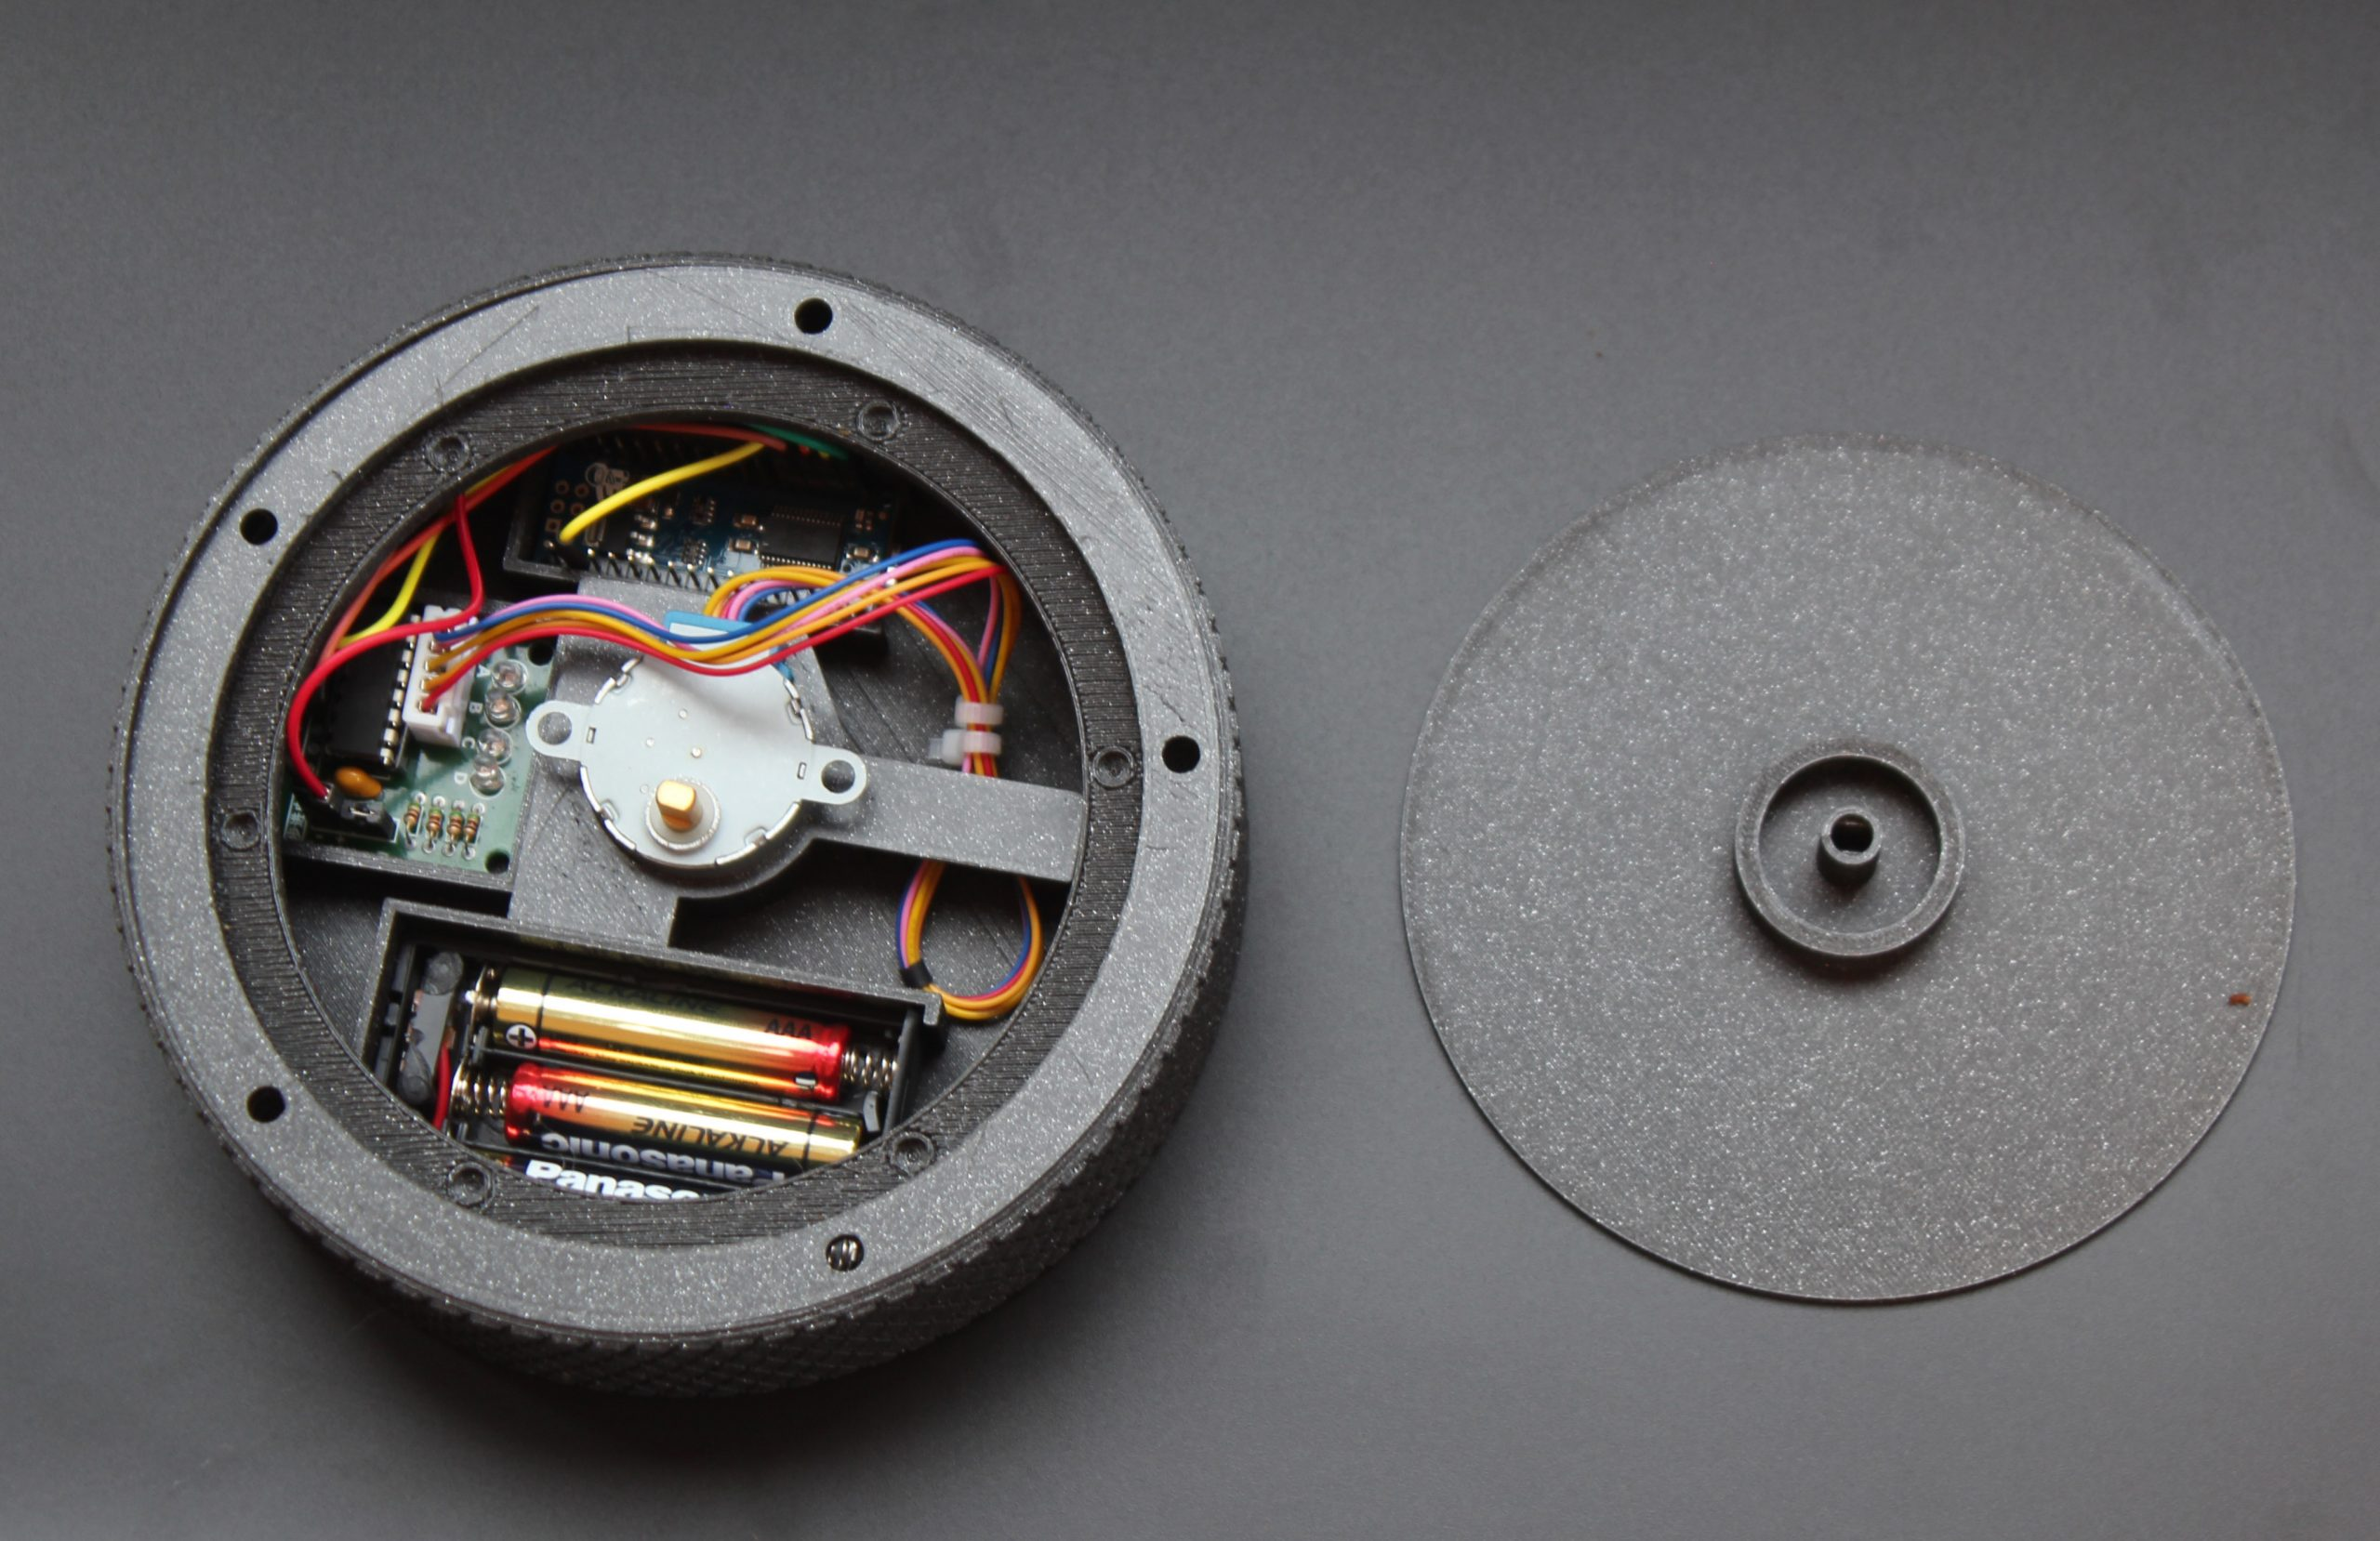 fdm-3d-printed-black-casing-with-stepper-motor-and-electronics-inside